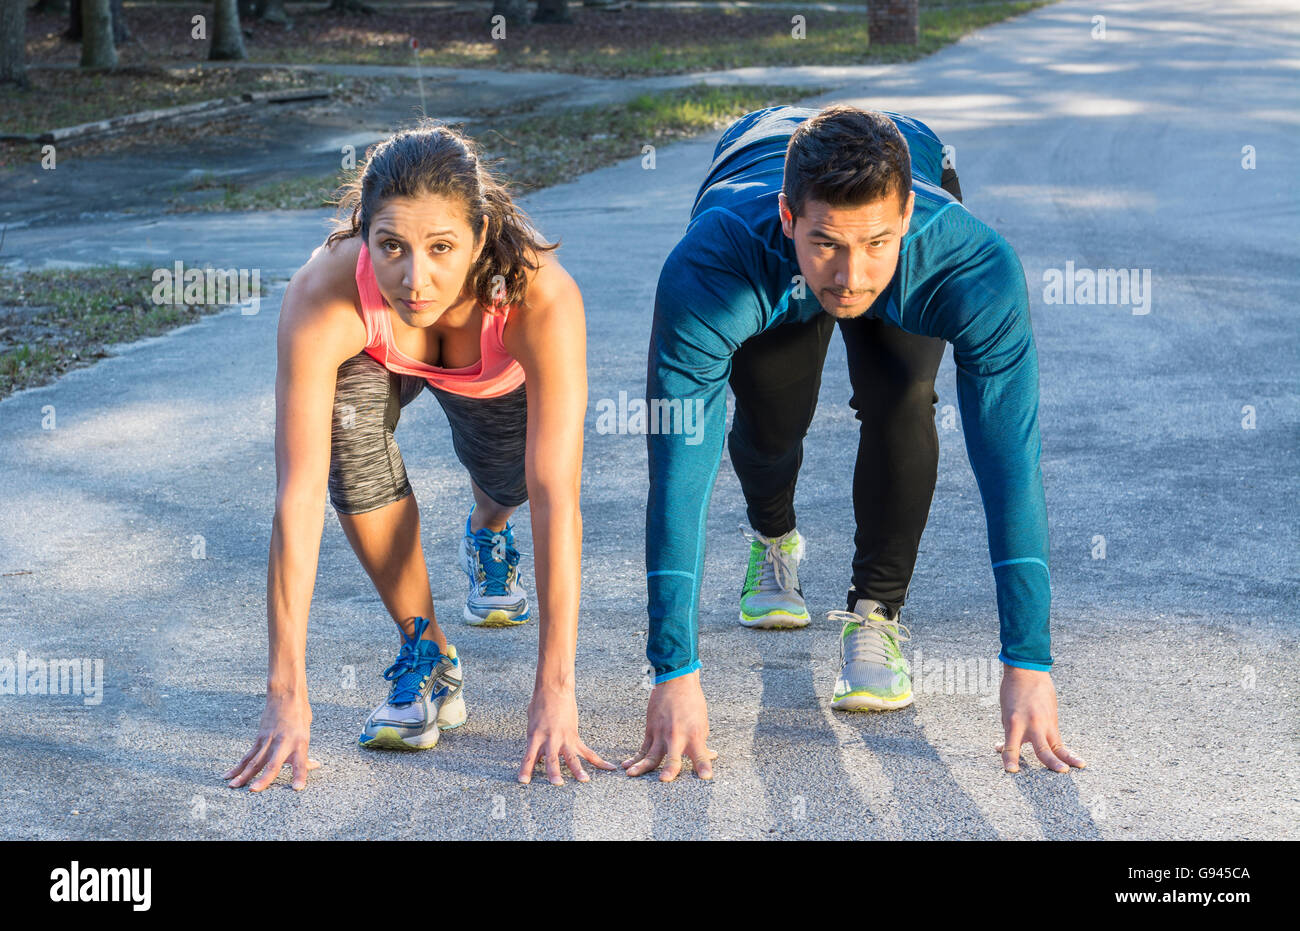 Young Hispanic Spanish couple competition running starting line tense winning contest Model Released, MR-14, MR - Stock Image